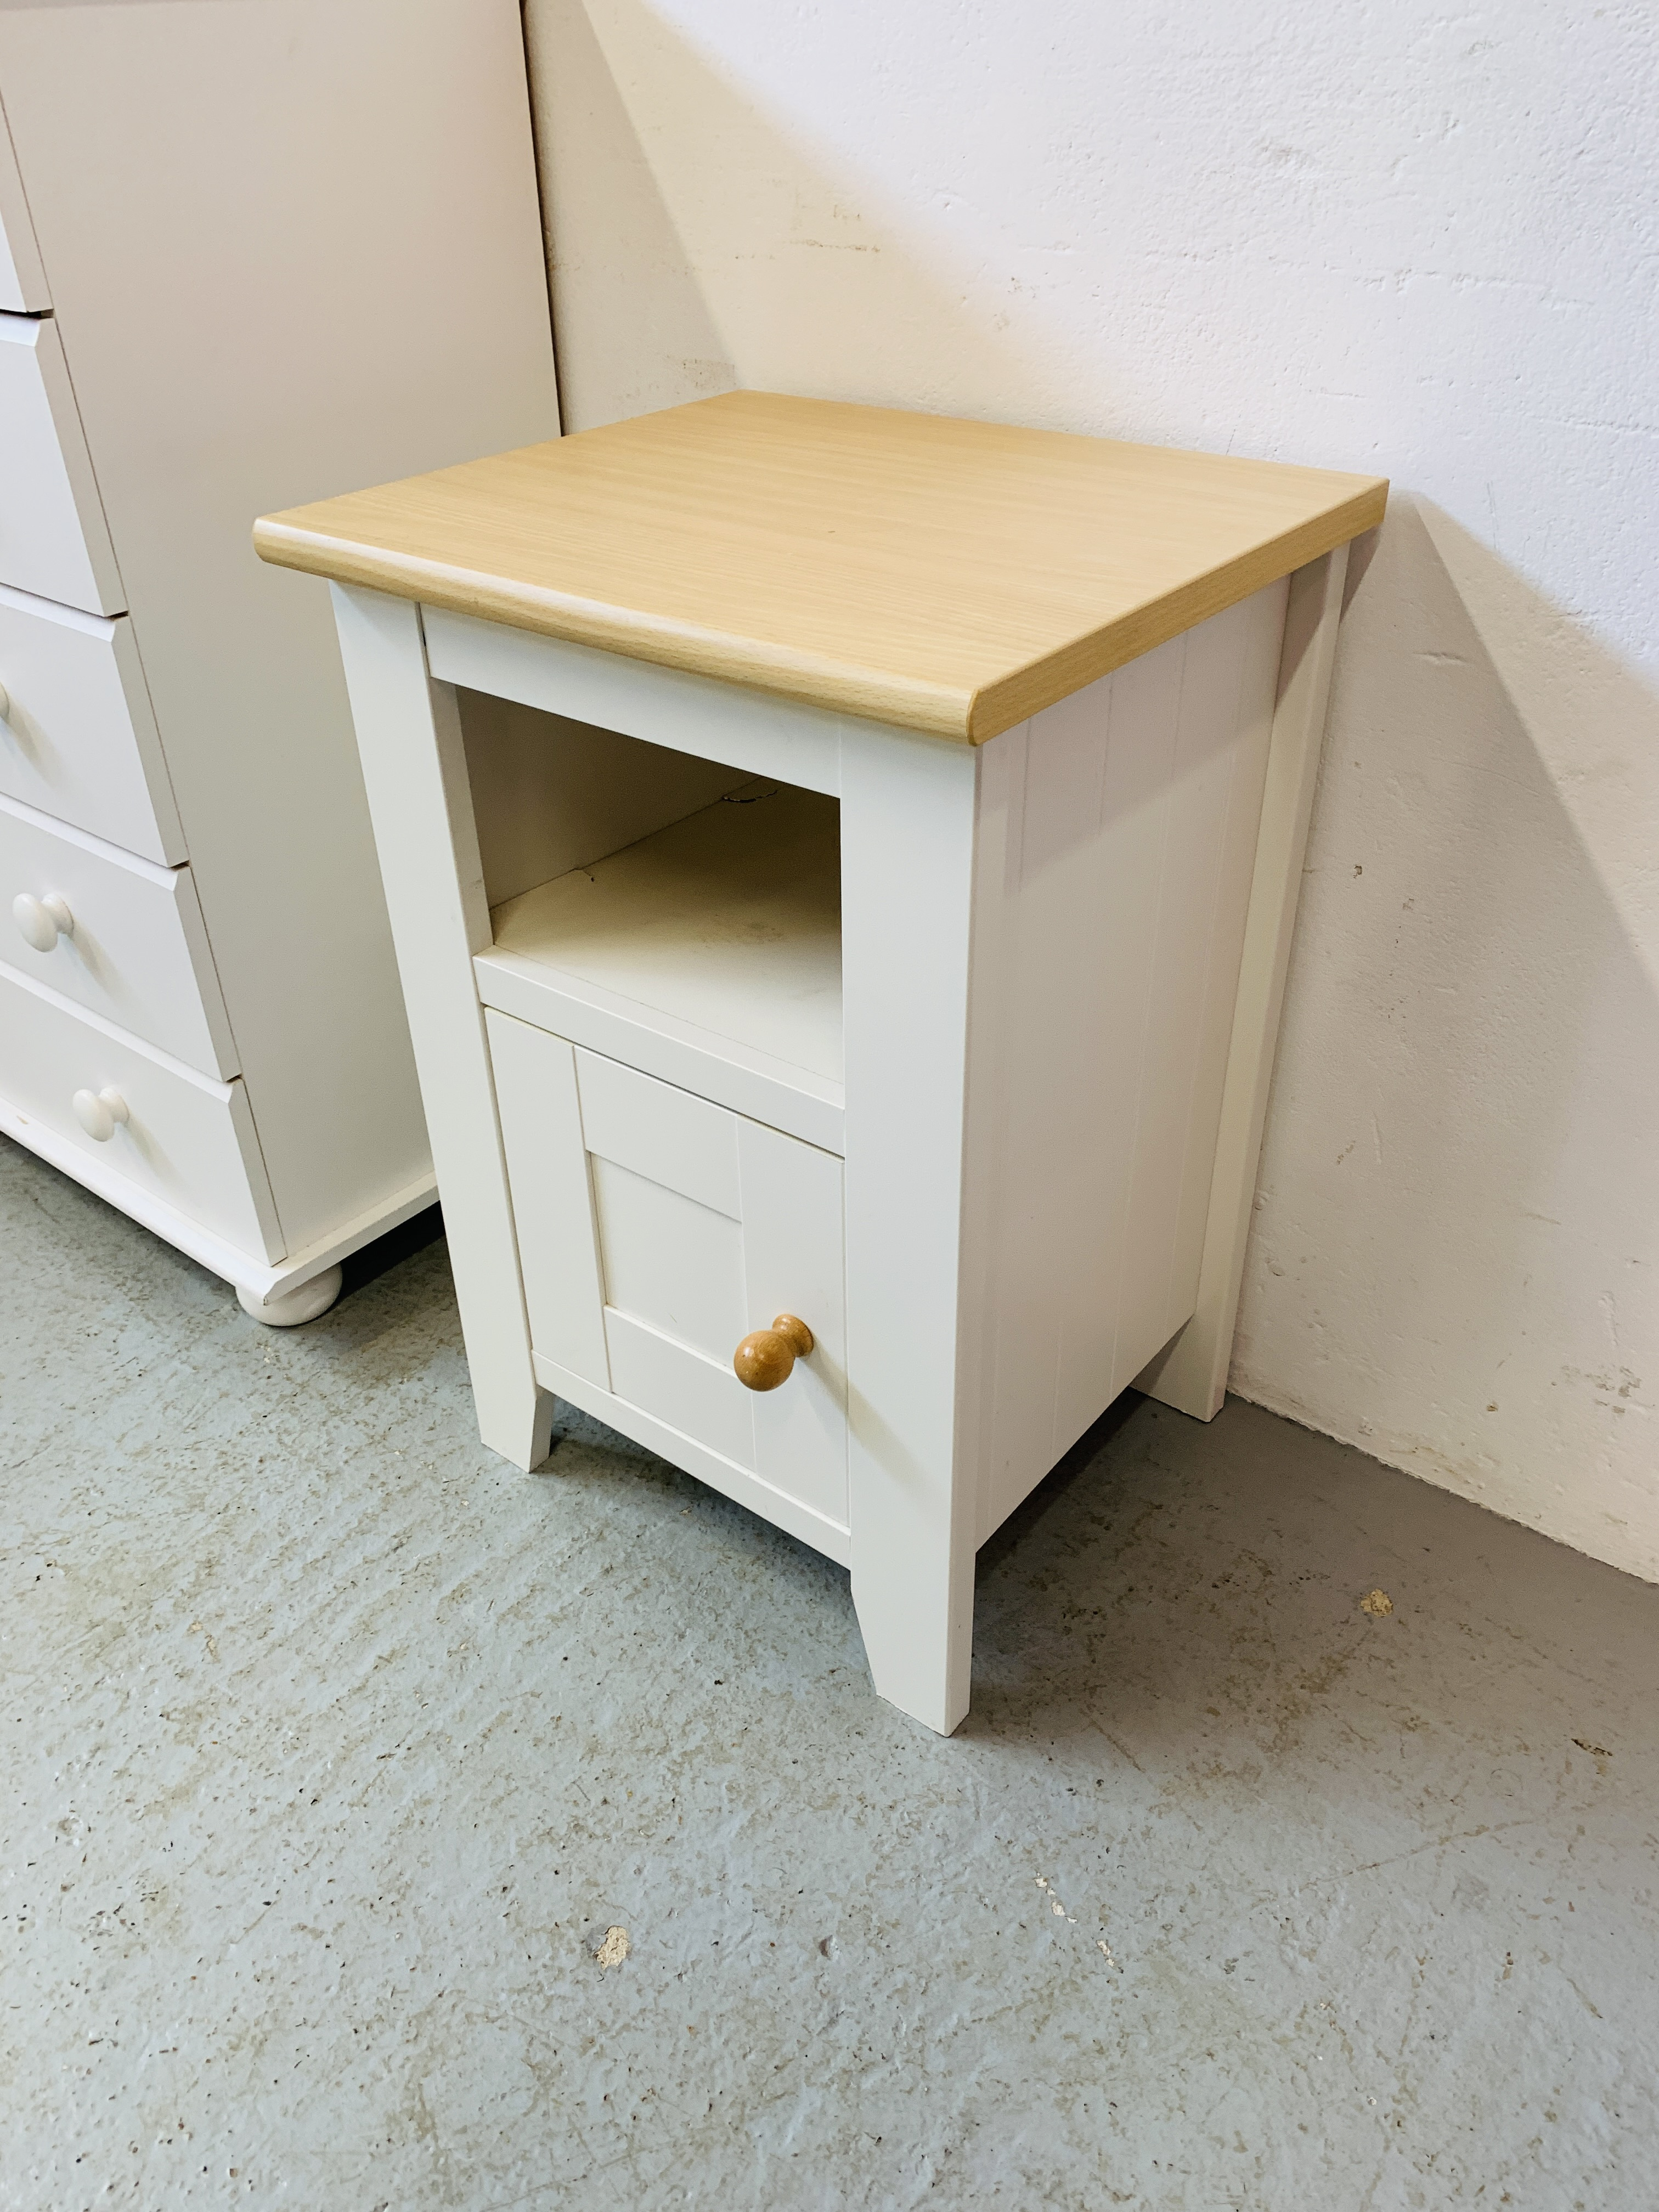 A MODERN WHITE FINISH TWO OVER FOUR CHEST OF DRAWERS - W 78CM. H 90CM. D 40CM. - Image 2 of 9